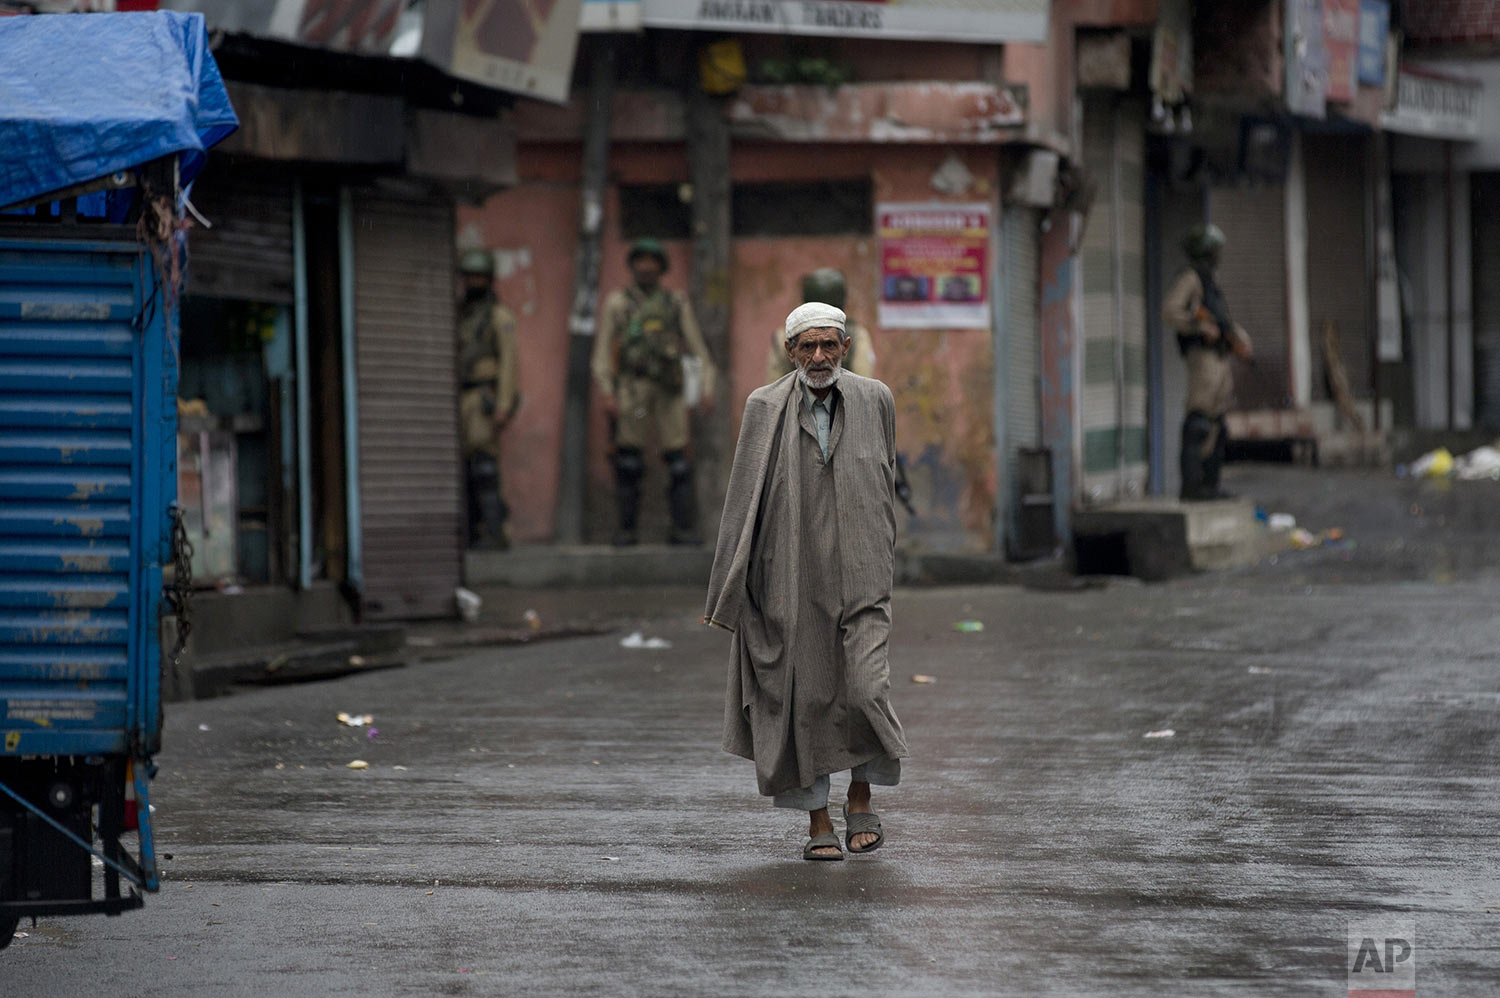 A Kashmiri man walks as Indian paramilitary soldiers stand guard during security lockdown in Srinagar, Indian controlled Kashmir, Wednesday, Aug. 14, 2019. (AP Photo/ Dar Yasin)